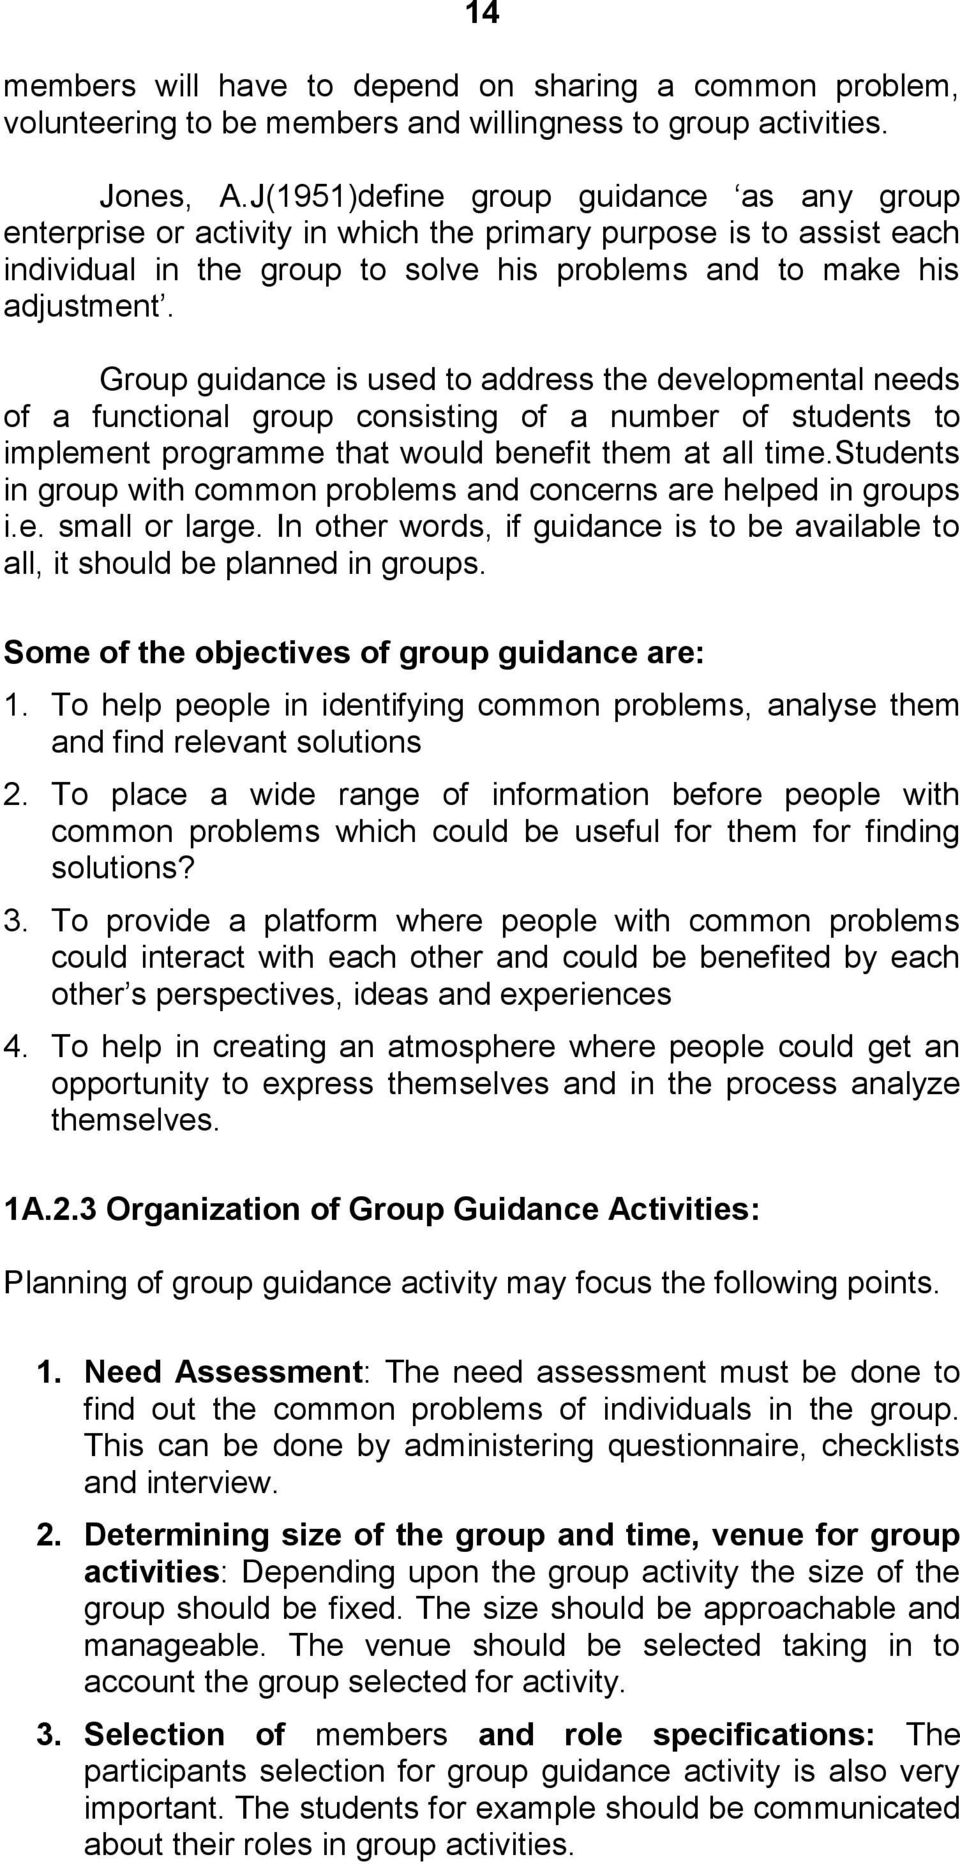 Group guidance is used to address the developmental needs of a functional group consisting of a number of students to implement programme that would benefit them at all time.